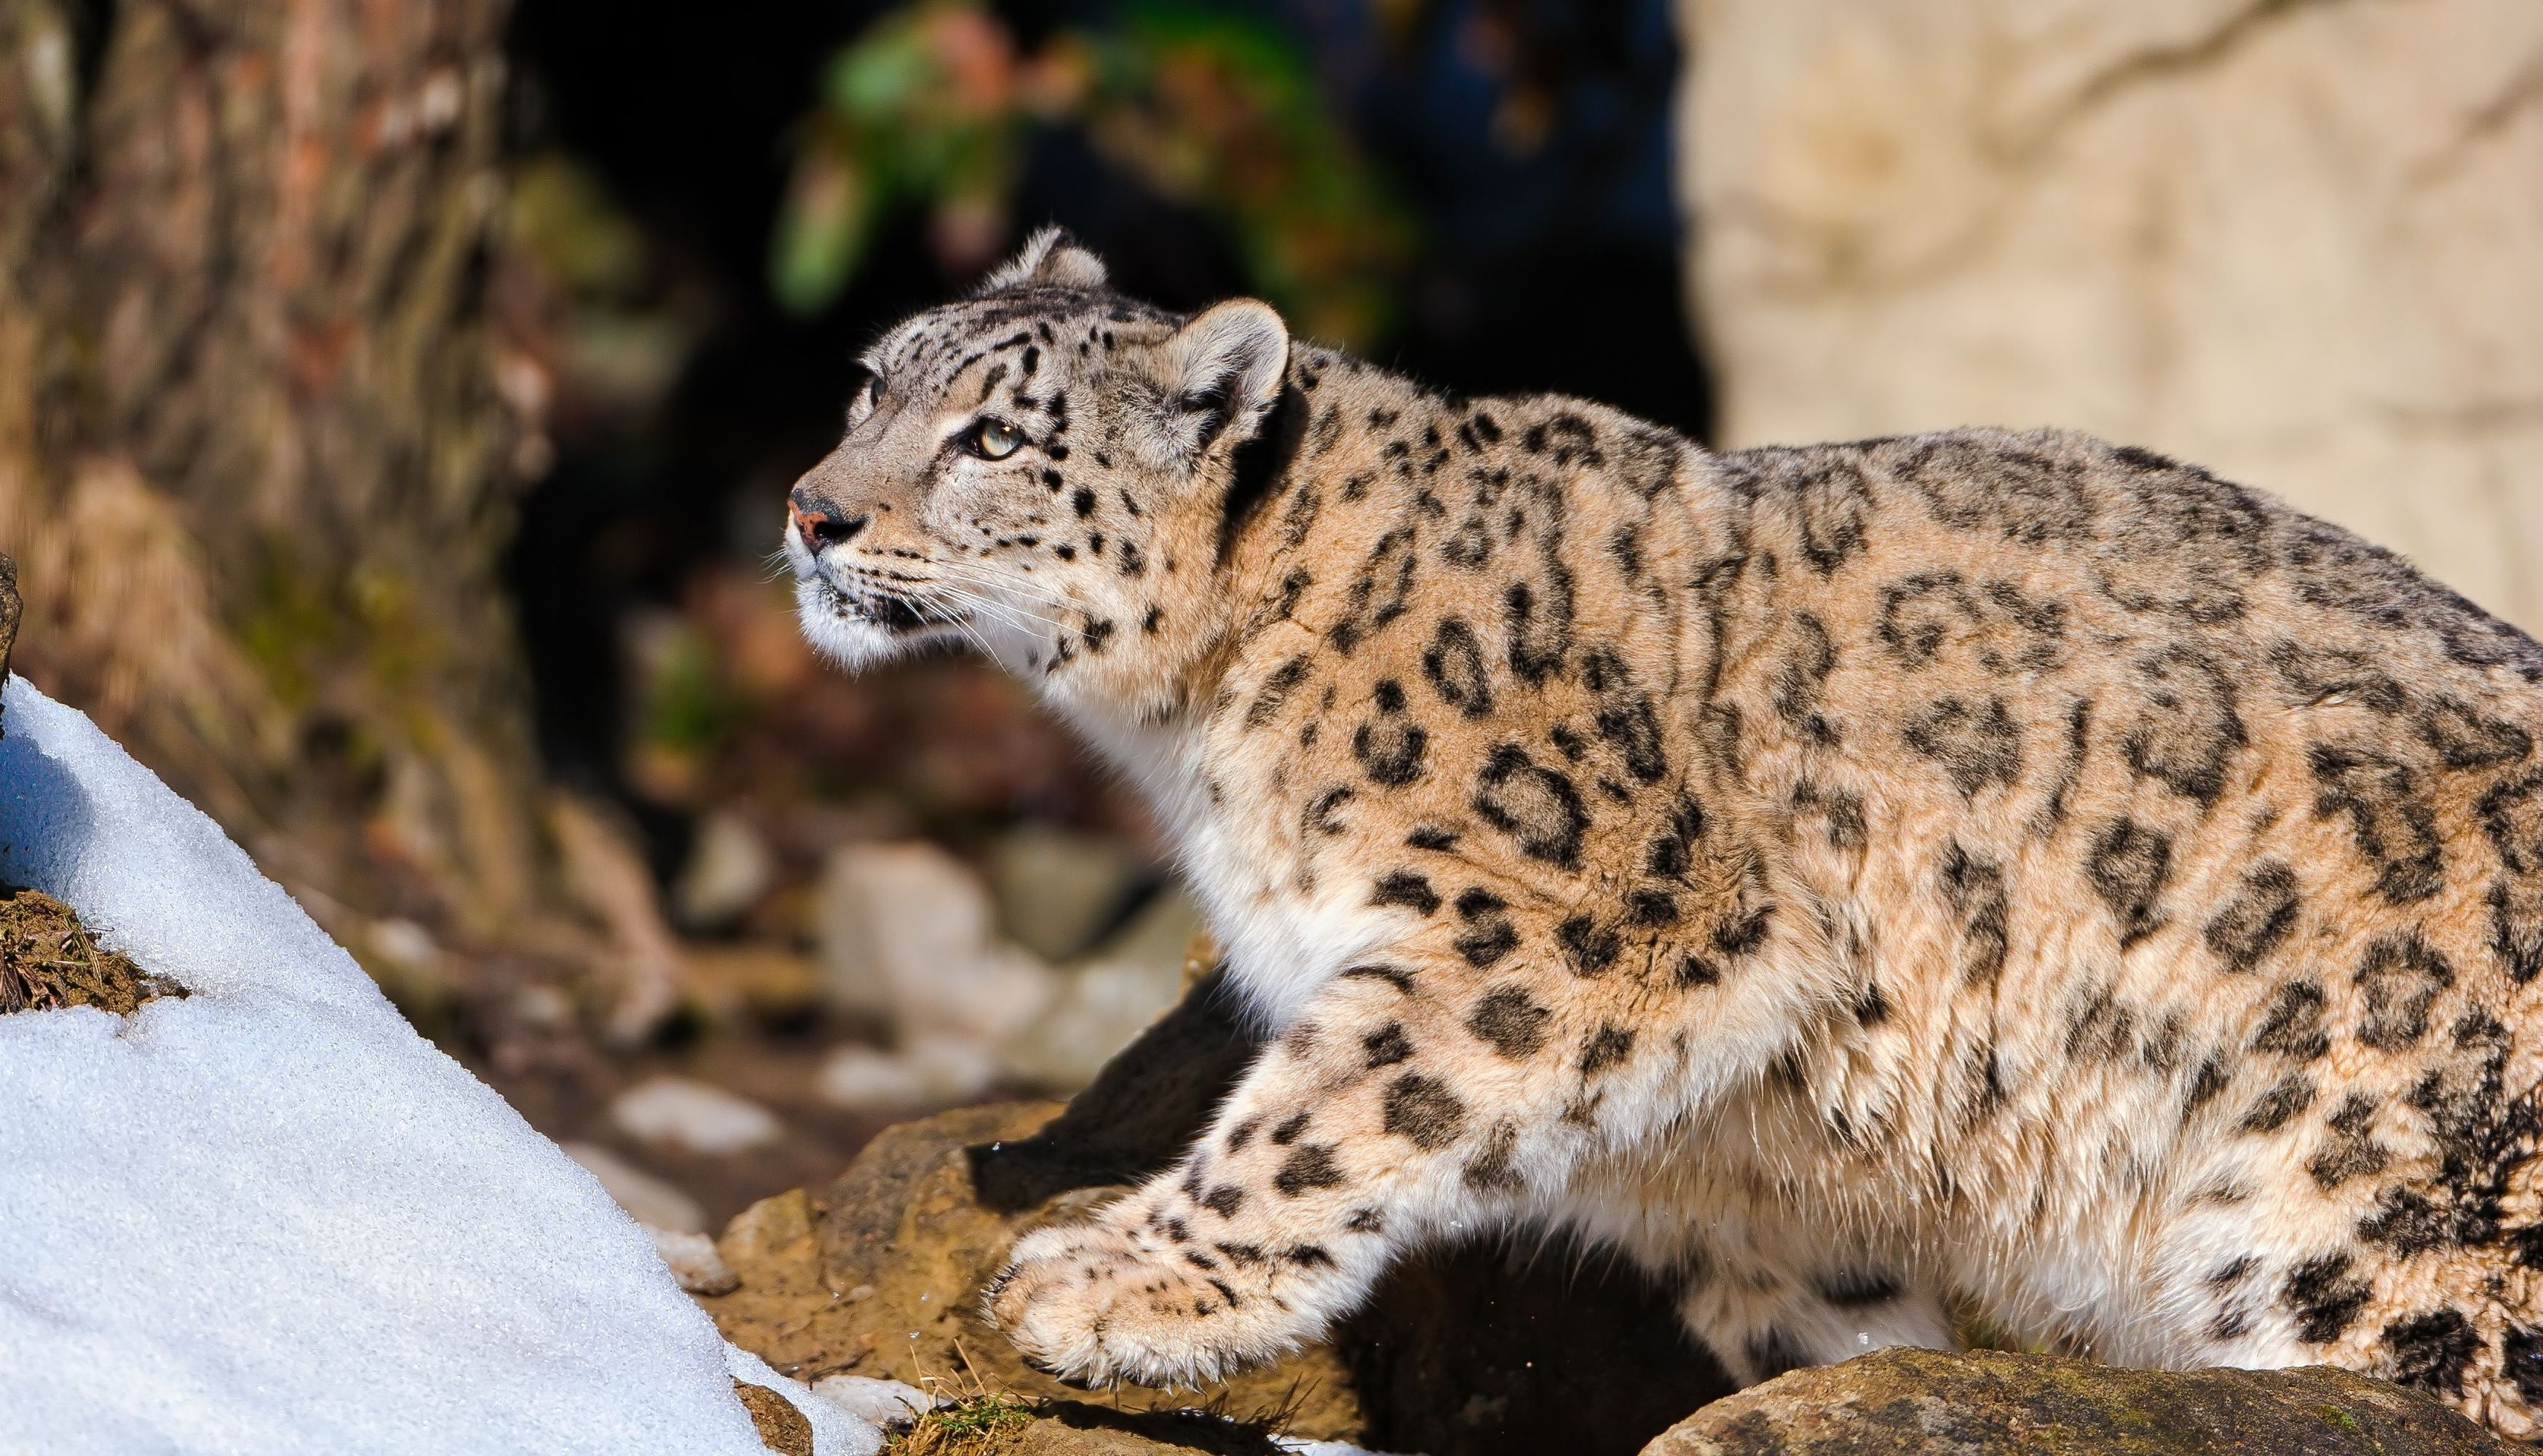 105380 download wallpaper Animals, To Lie Down, Lie, Hunting, Hunt, Lurk, Hide, Snow, Snow Leopard screensavers and pictures for free